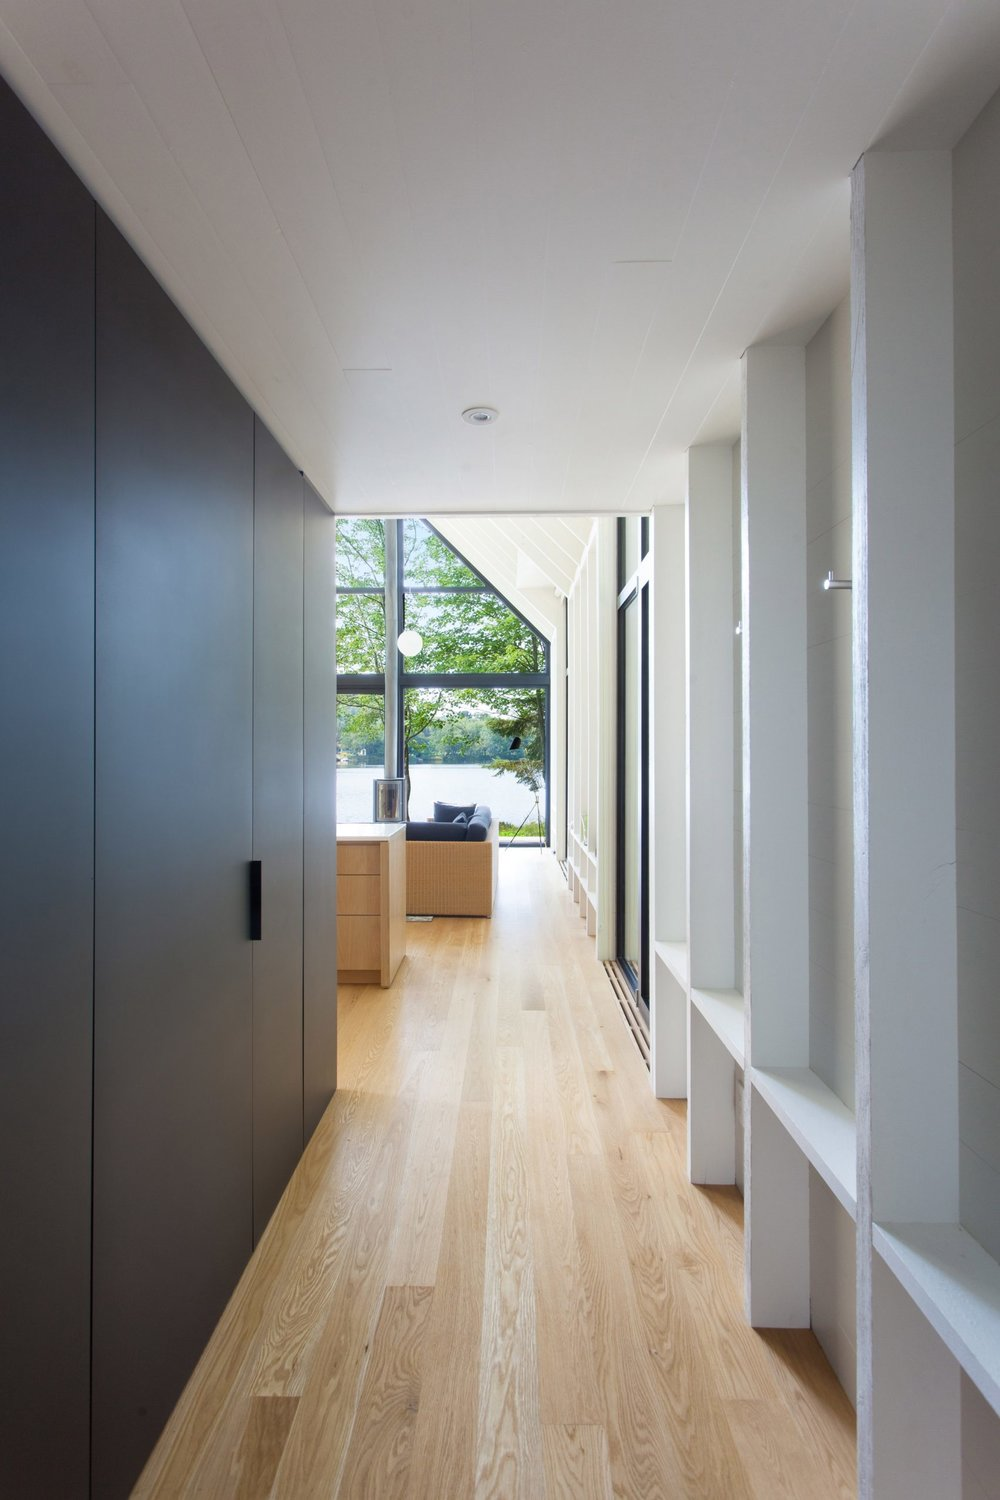 window-on-the-lake-yh2-architecture-residential-canada_dezeen_2364_col_7-1704x2556.jpg